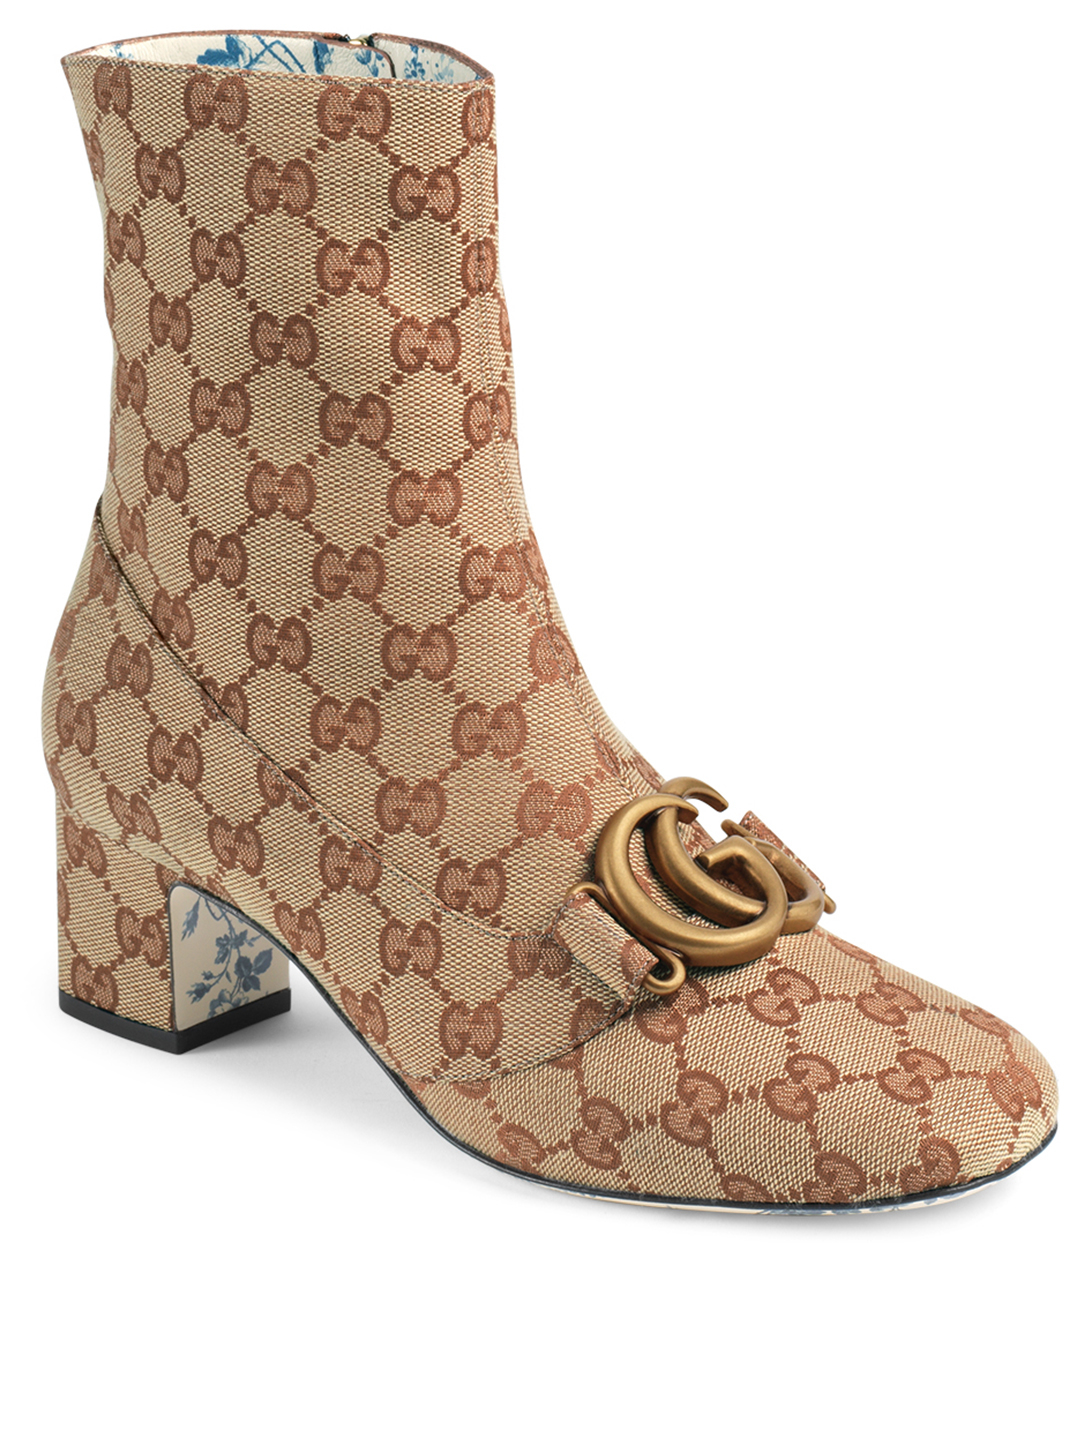 ... GUCCI GG Canvas Ankle Boots With Double G Designers Neutral ... 8f3acb7a0d0